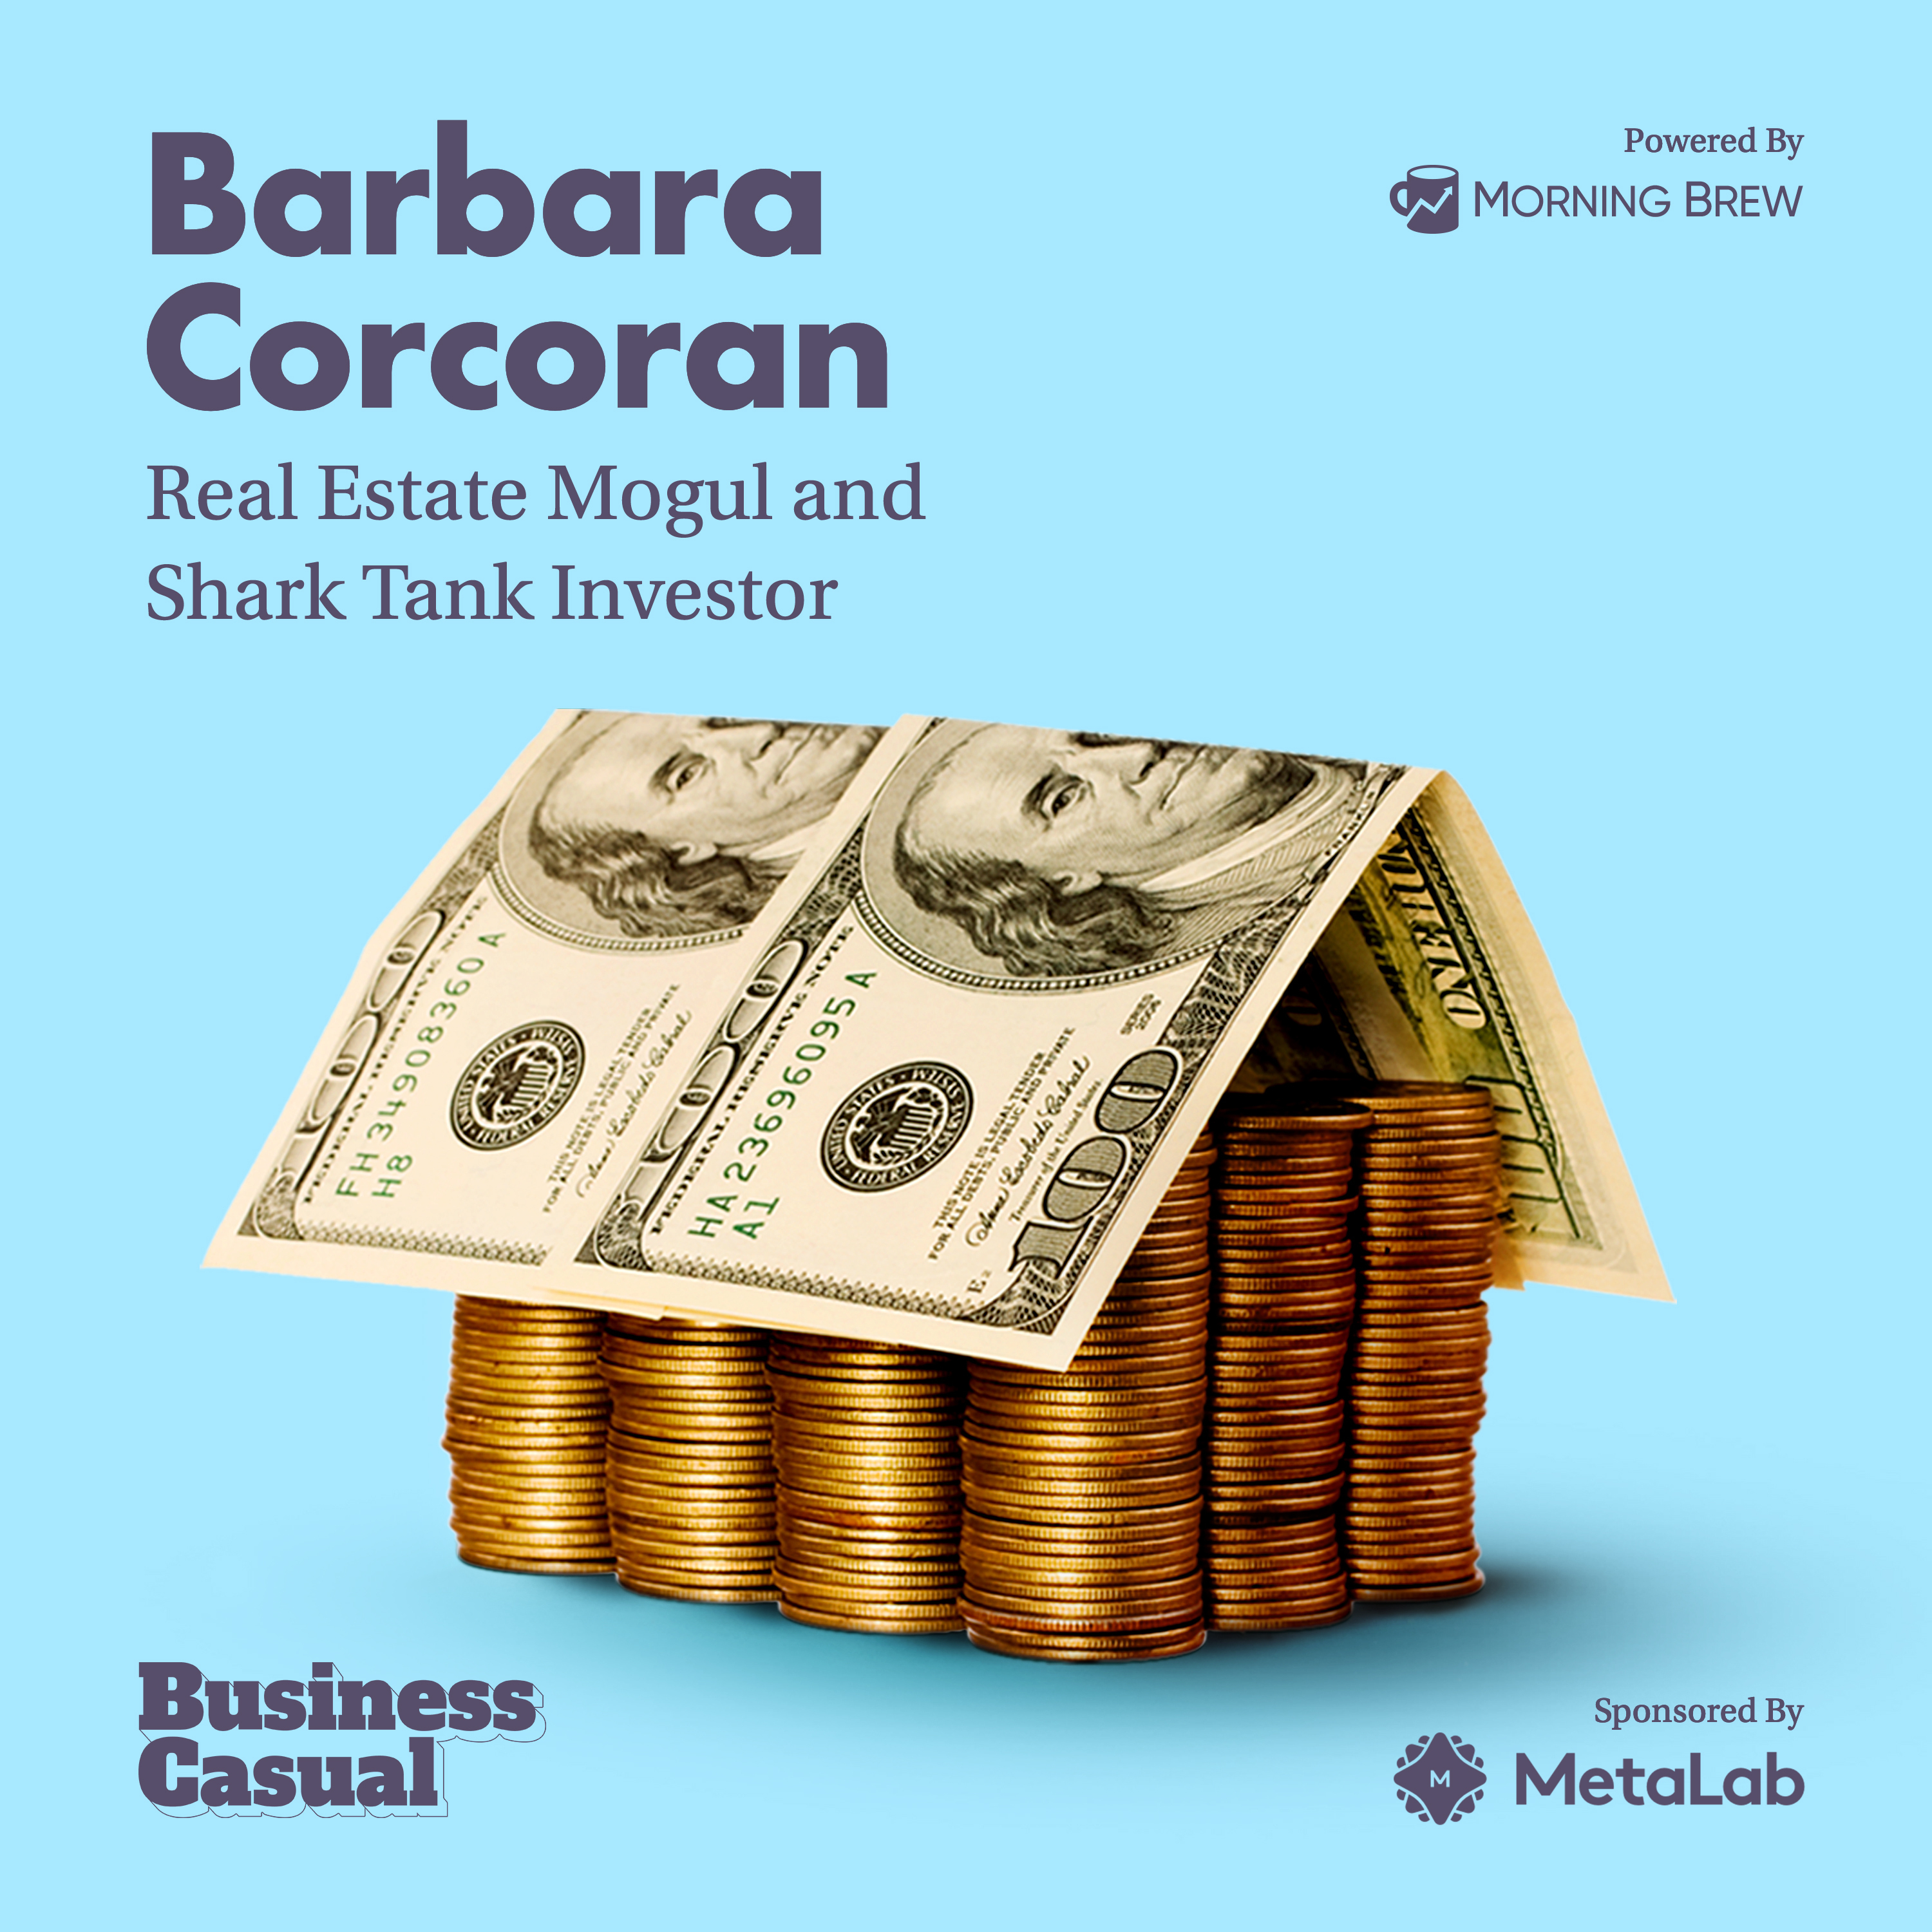 Barbara Corcoran on the Emotional Economics of the Housing Market